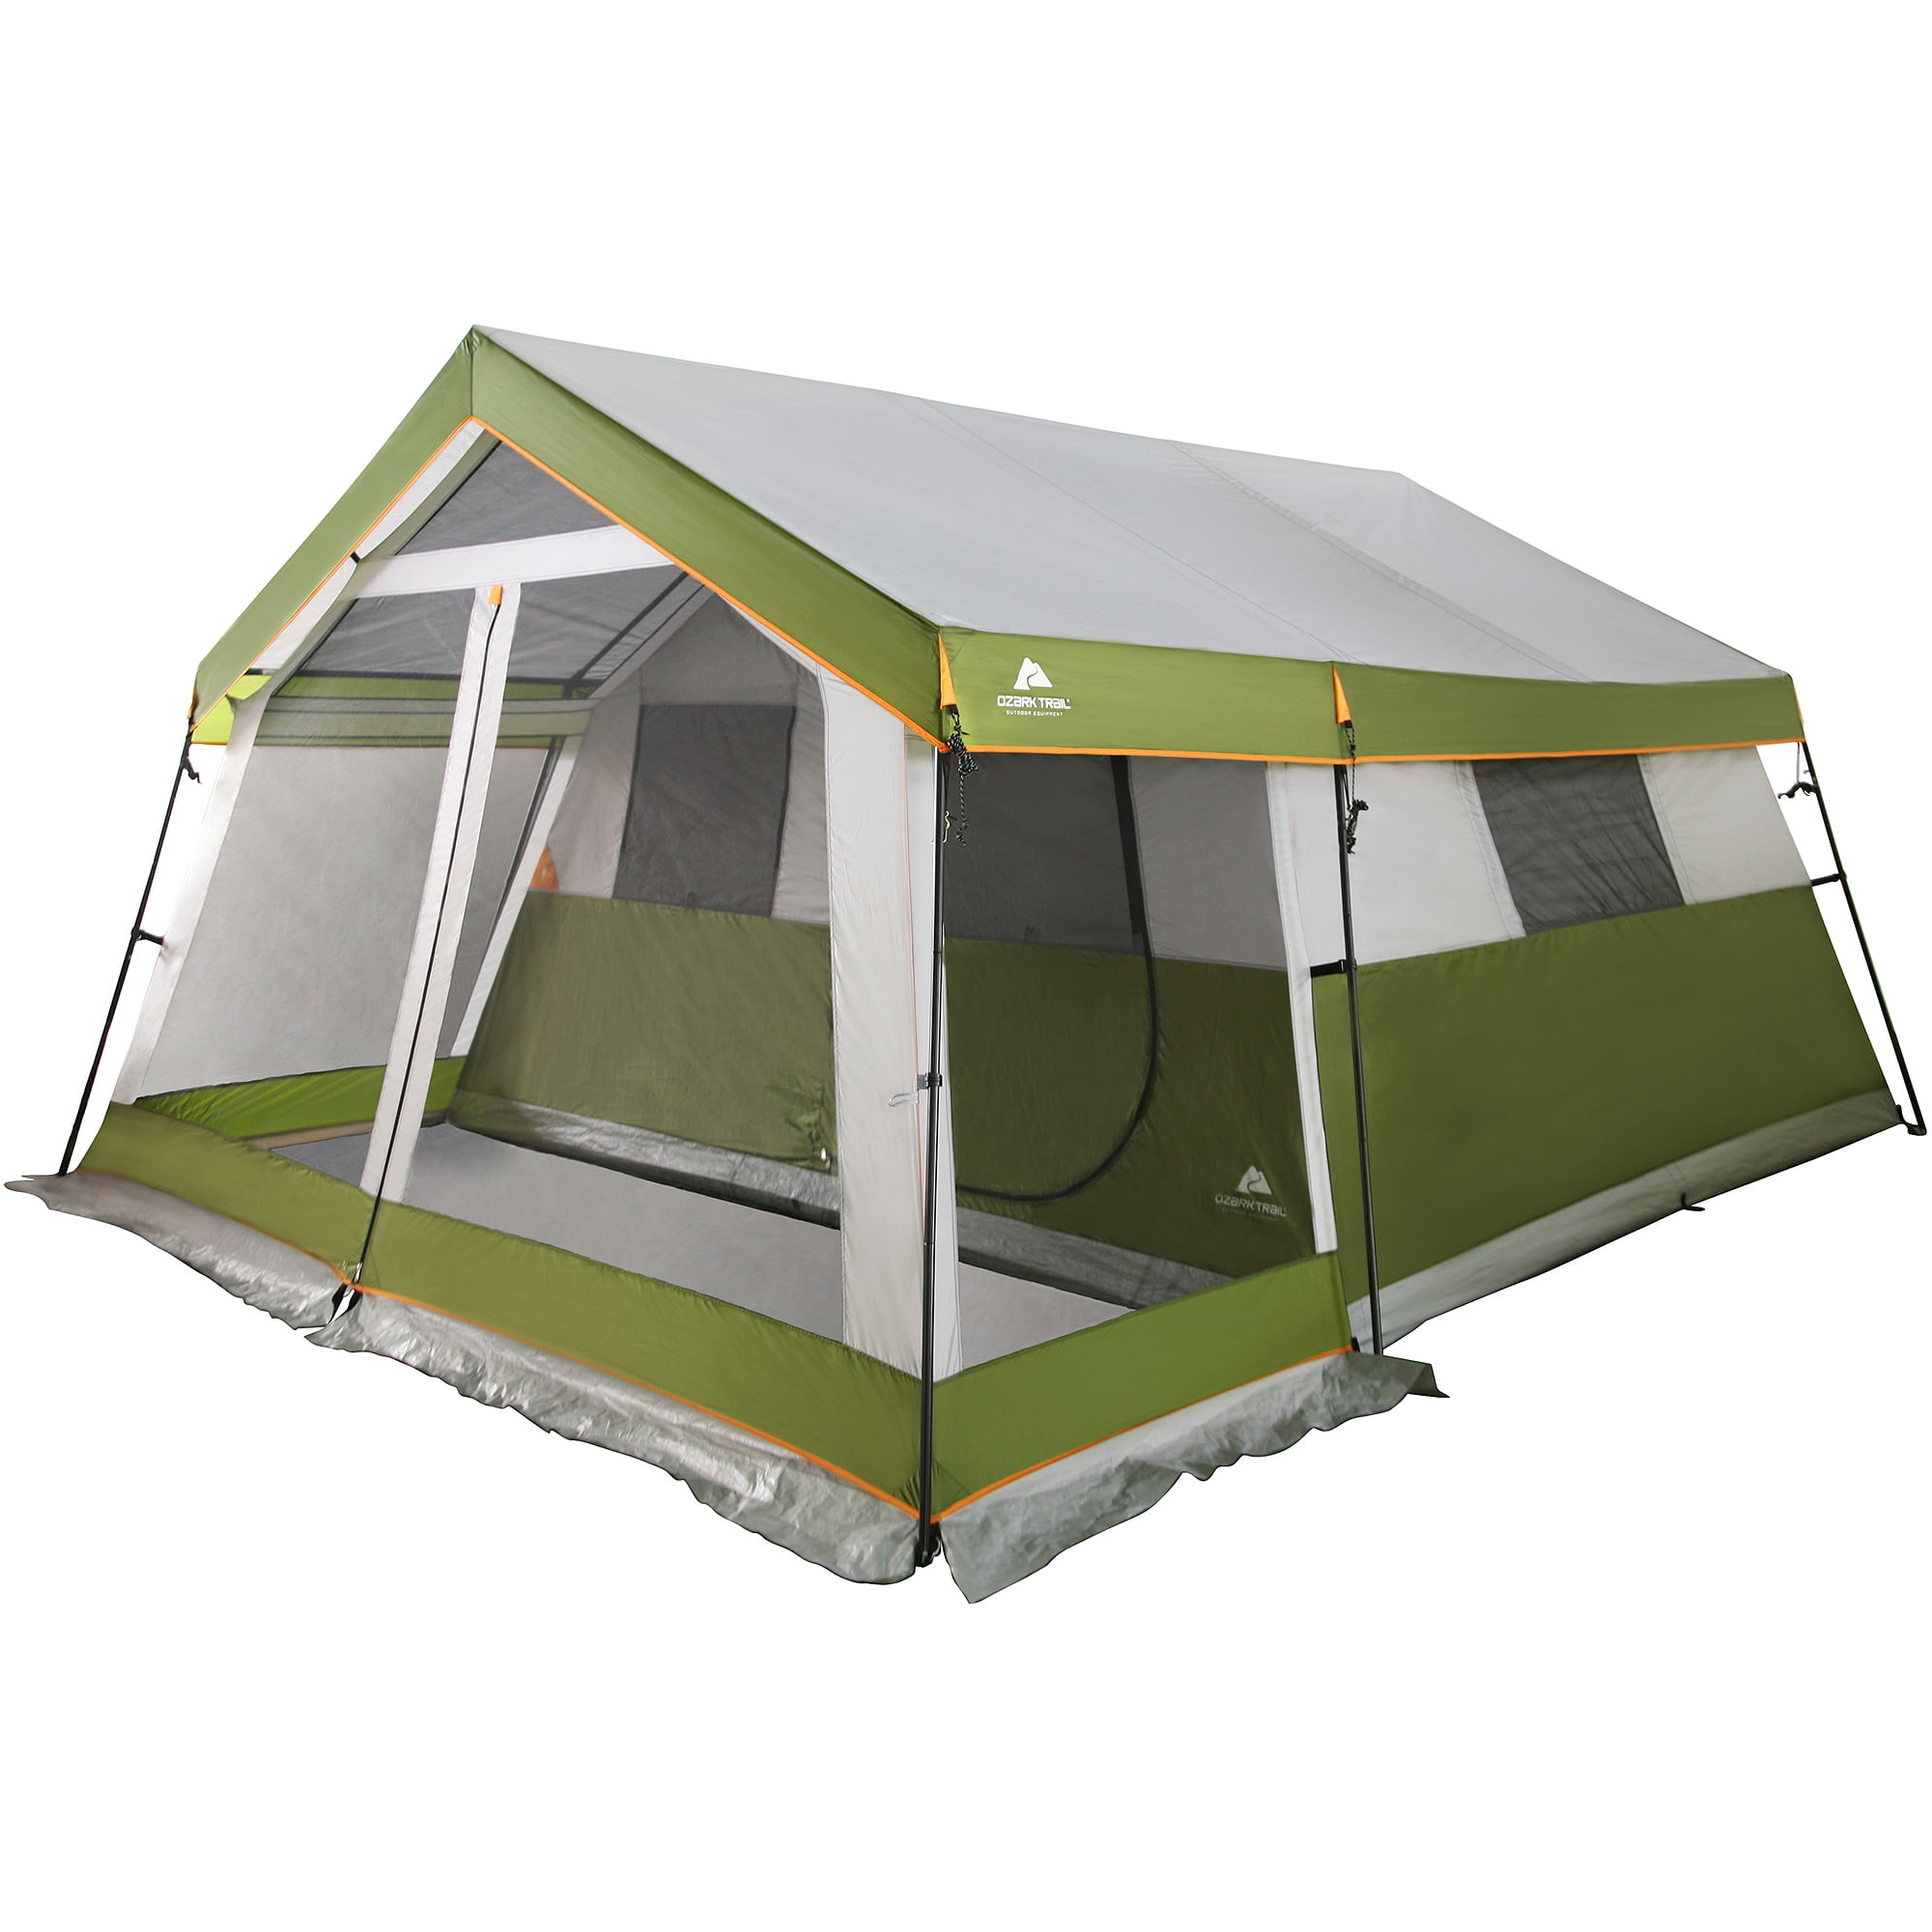 Merveilleux Ozark Trail 8 Person Family Cabin Tent With Screen Porch